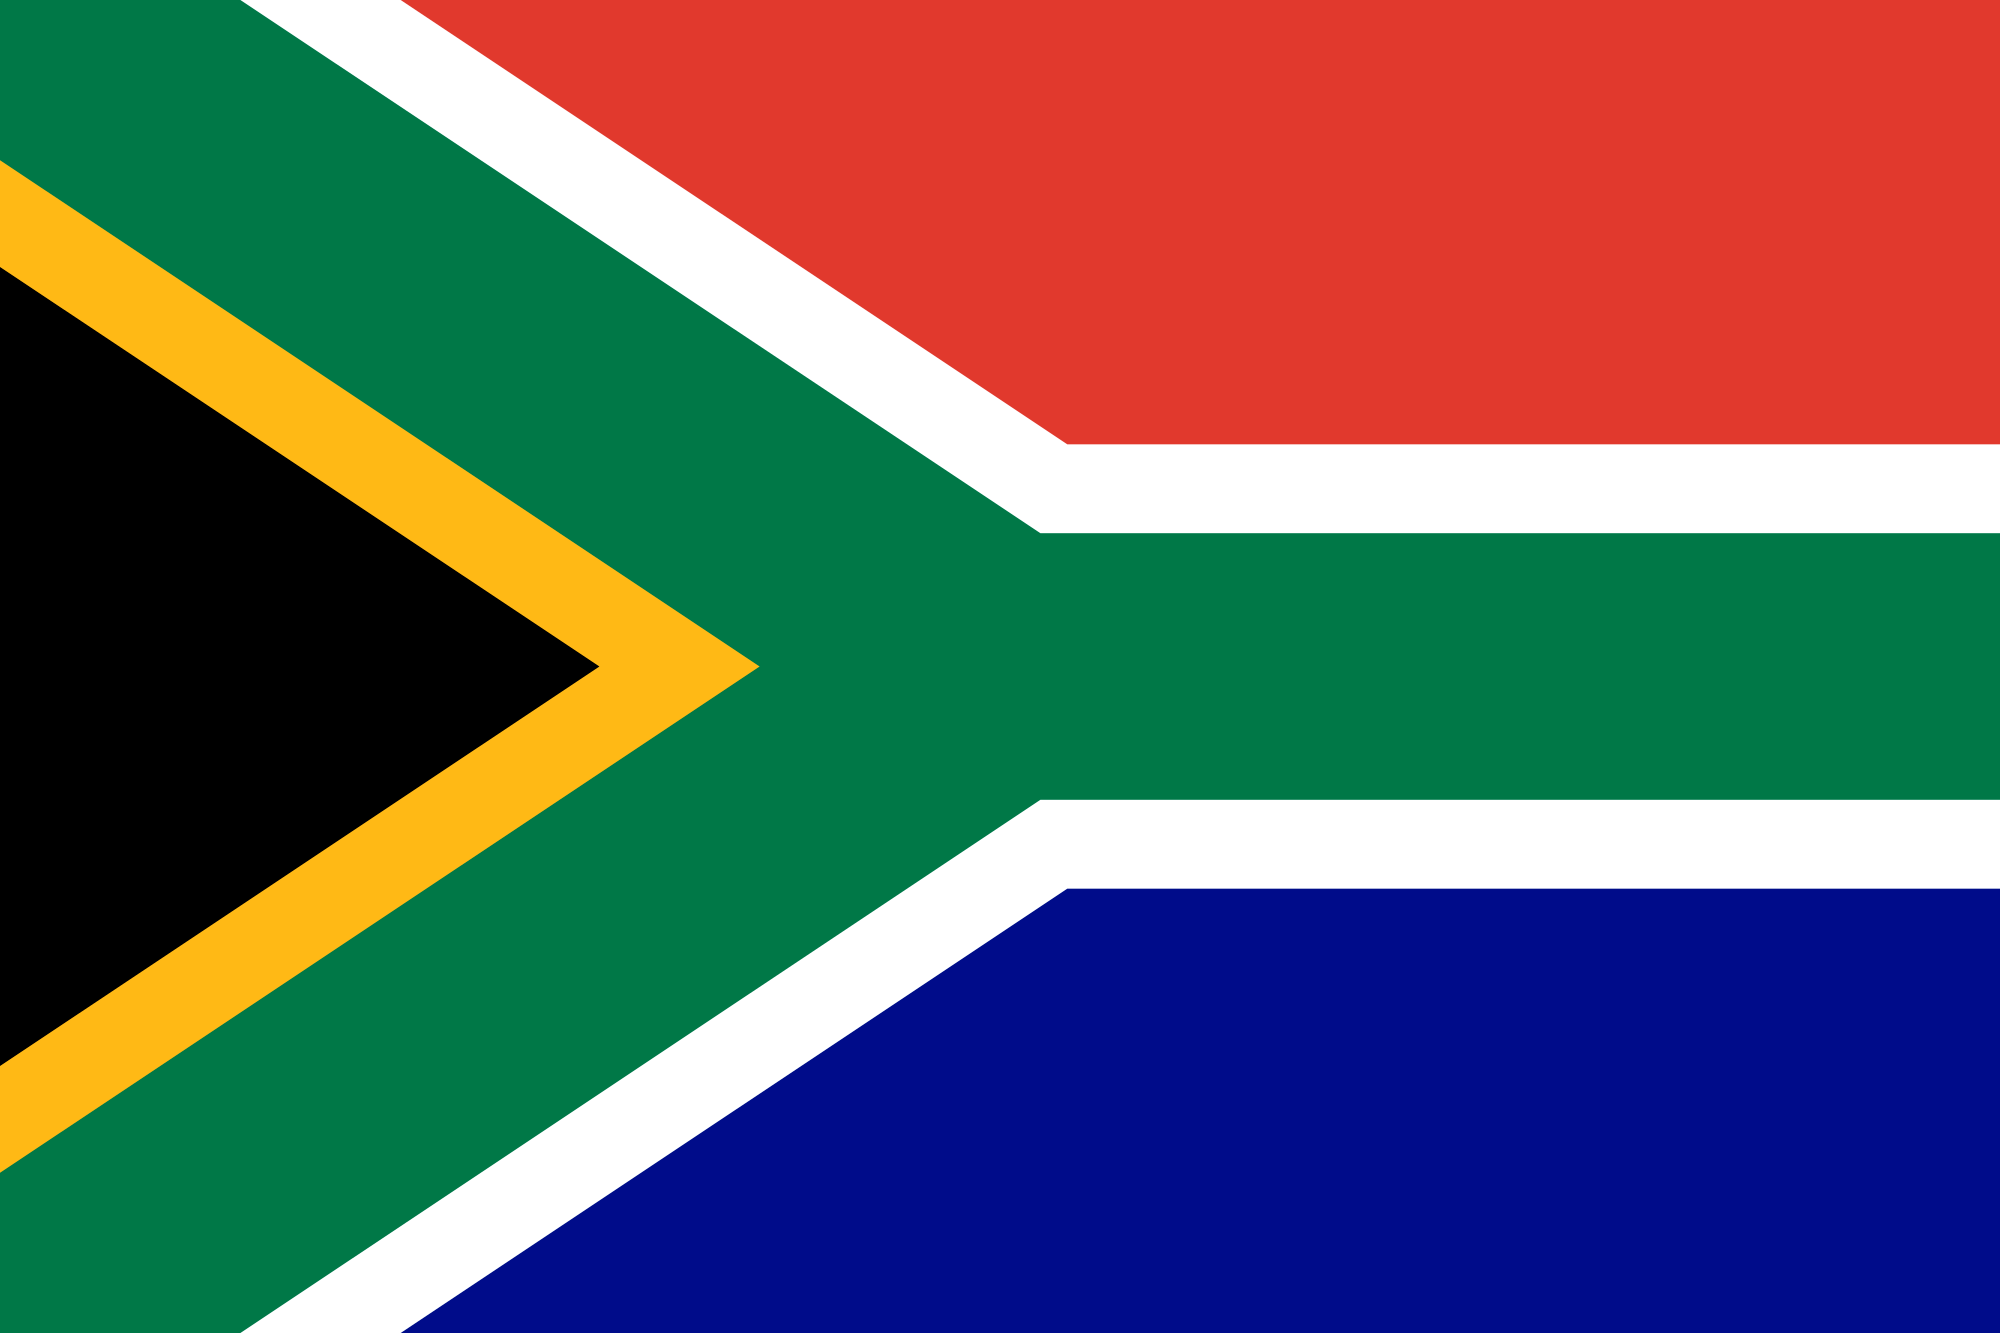 south african flag,flag,africa,south,country,nation,national,patriotic,culture